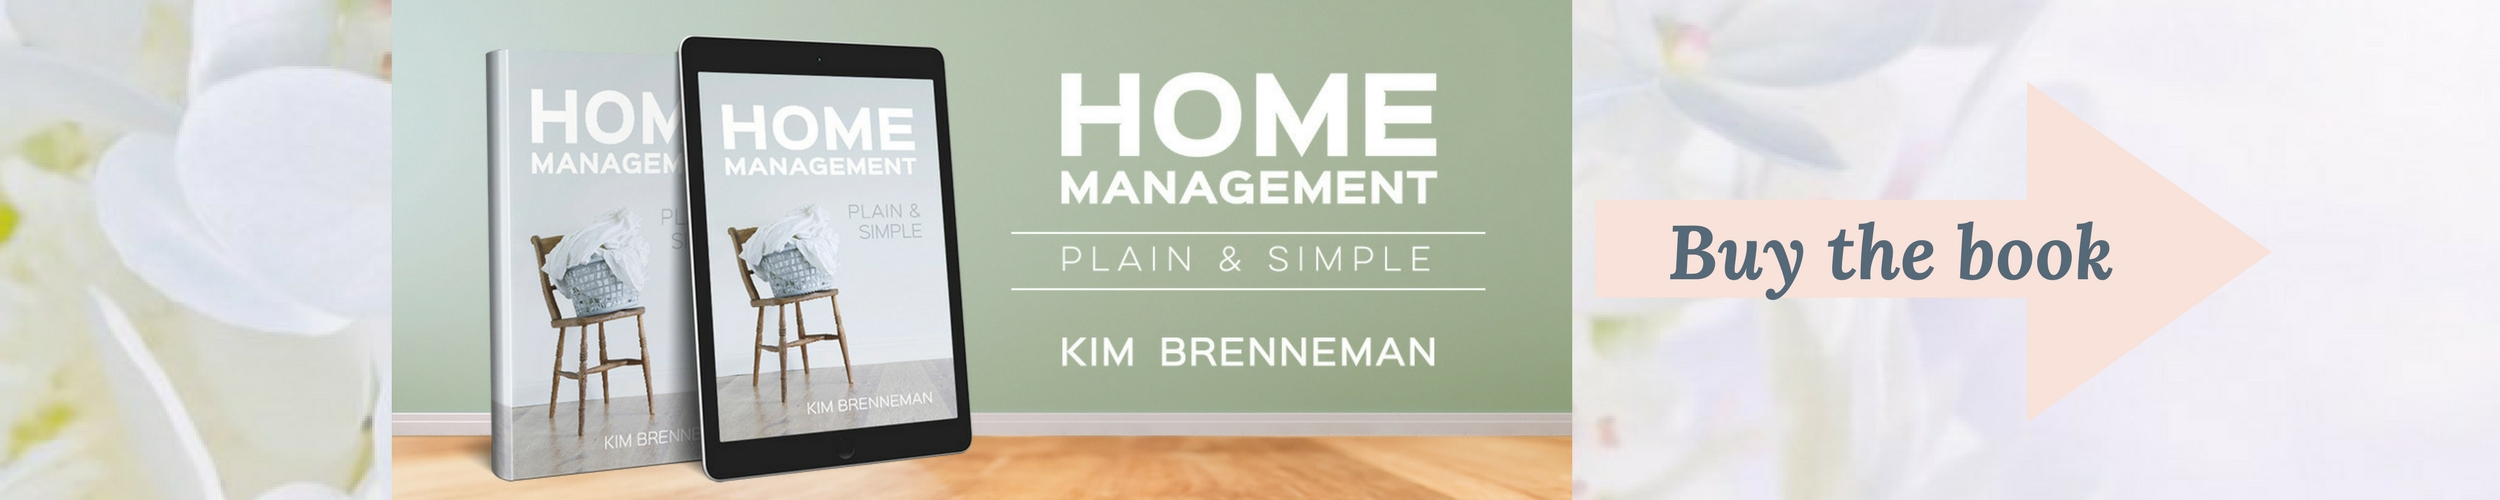 Buy Home Management Plain and Simple